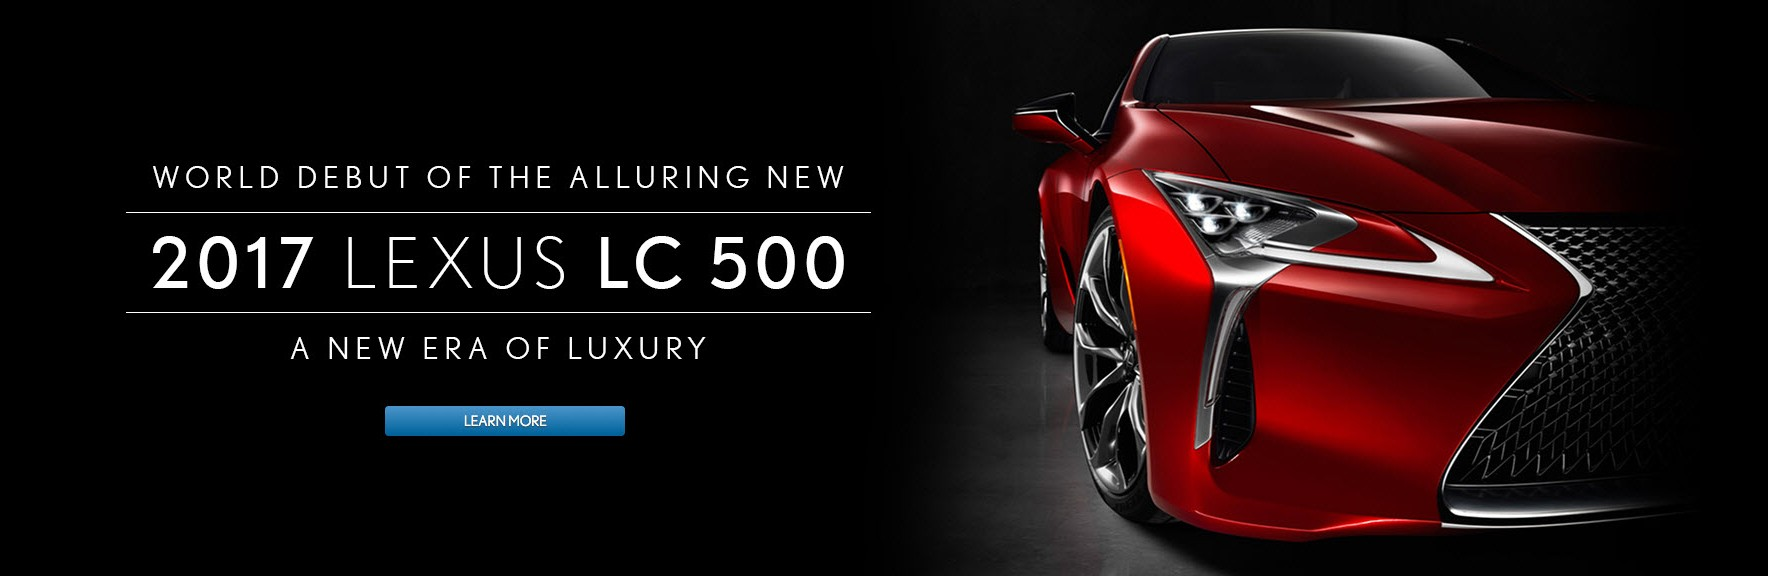 World debut of 2017 Lexus LC 500